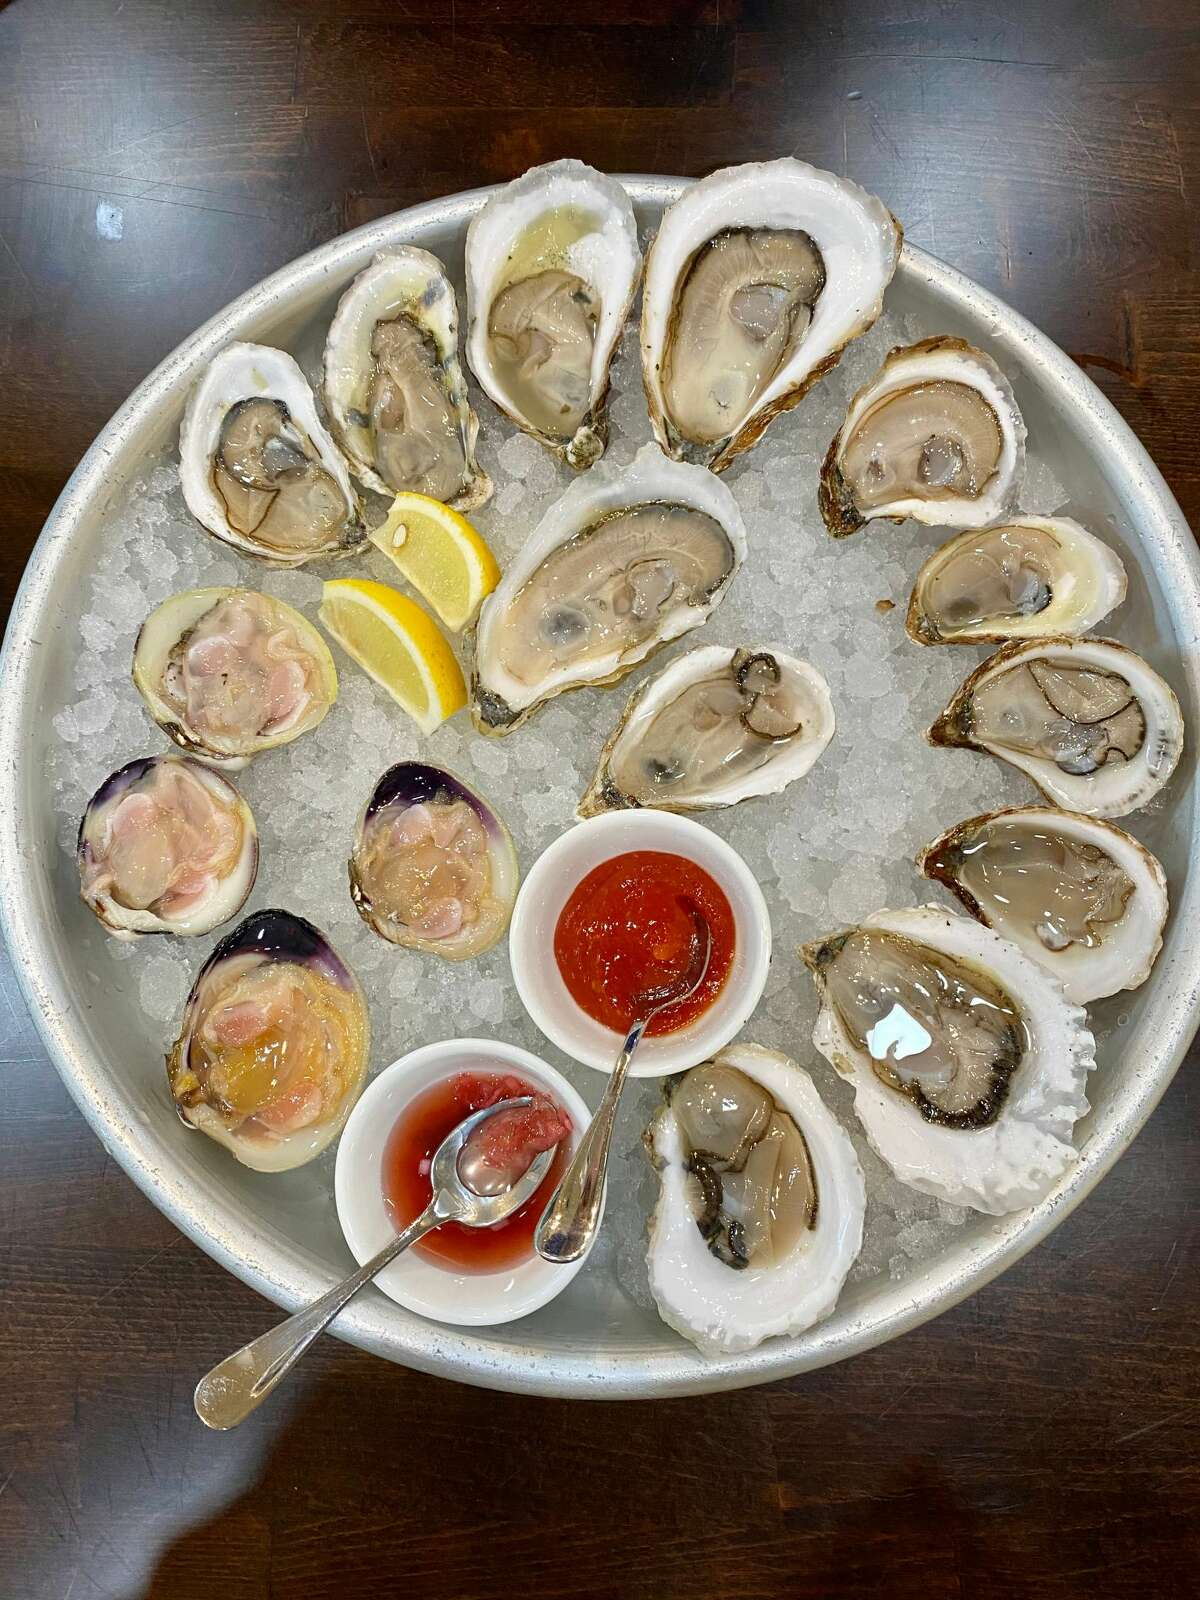 Oyster platter at Hooked Market & Kitchen in Latham.